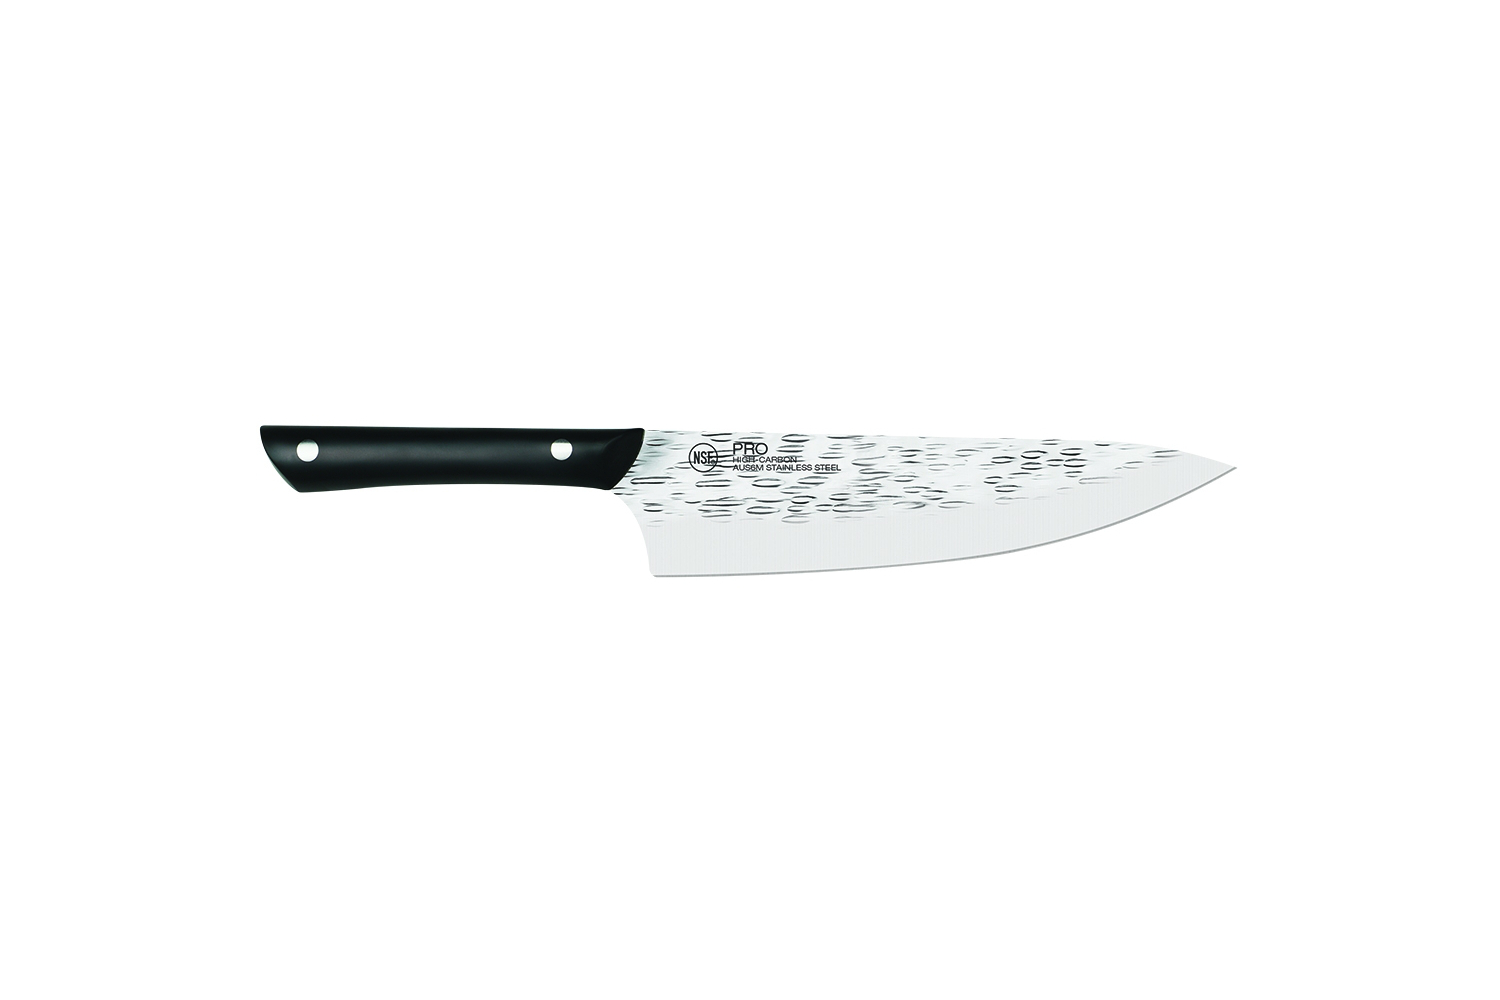 KAI Professional 8 inch Chef's Knife